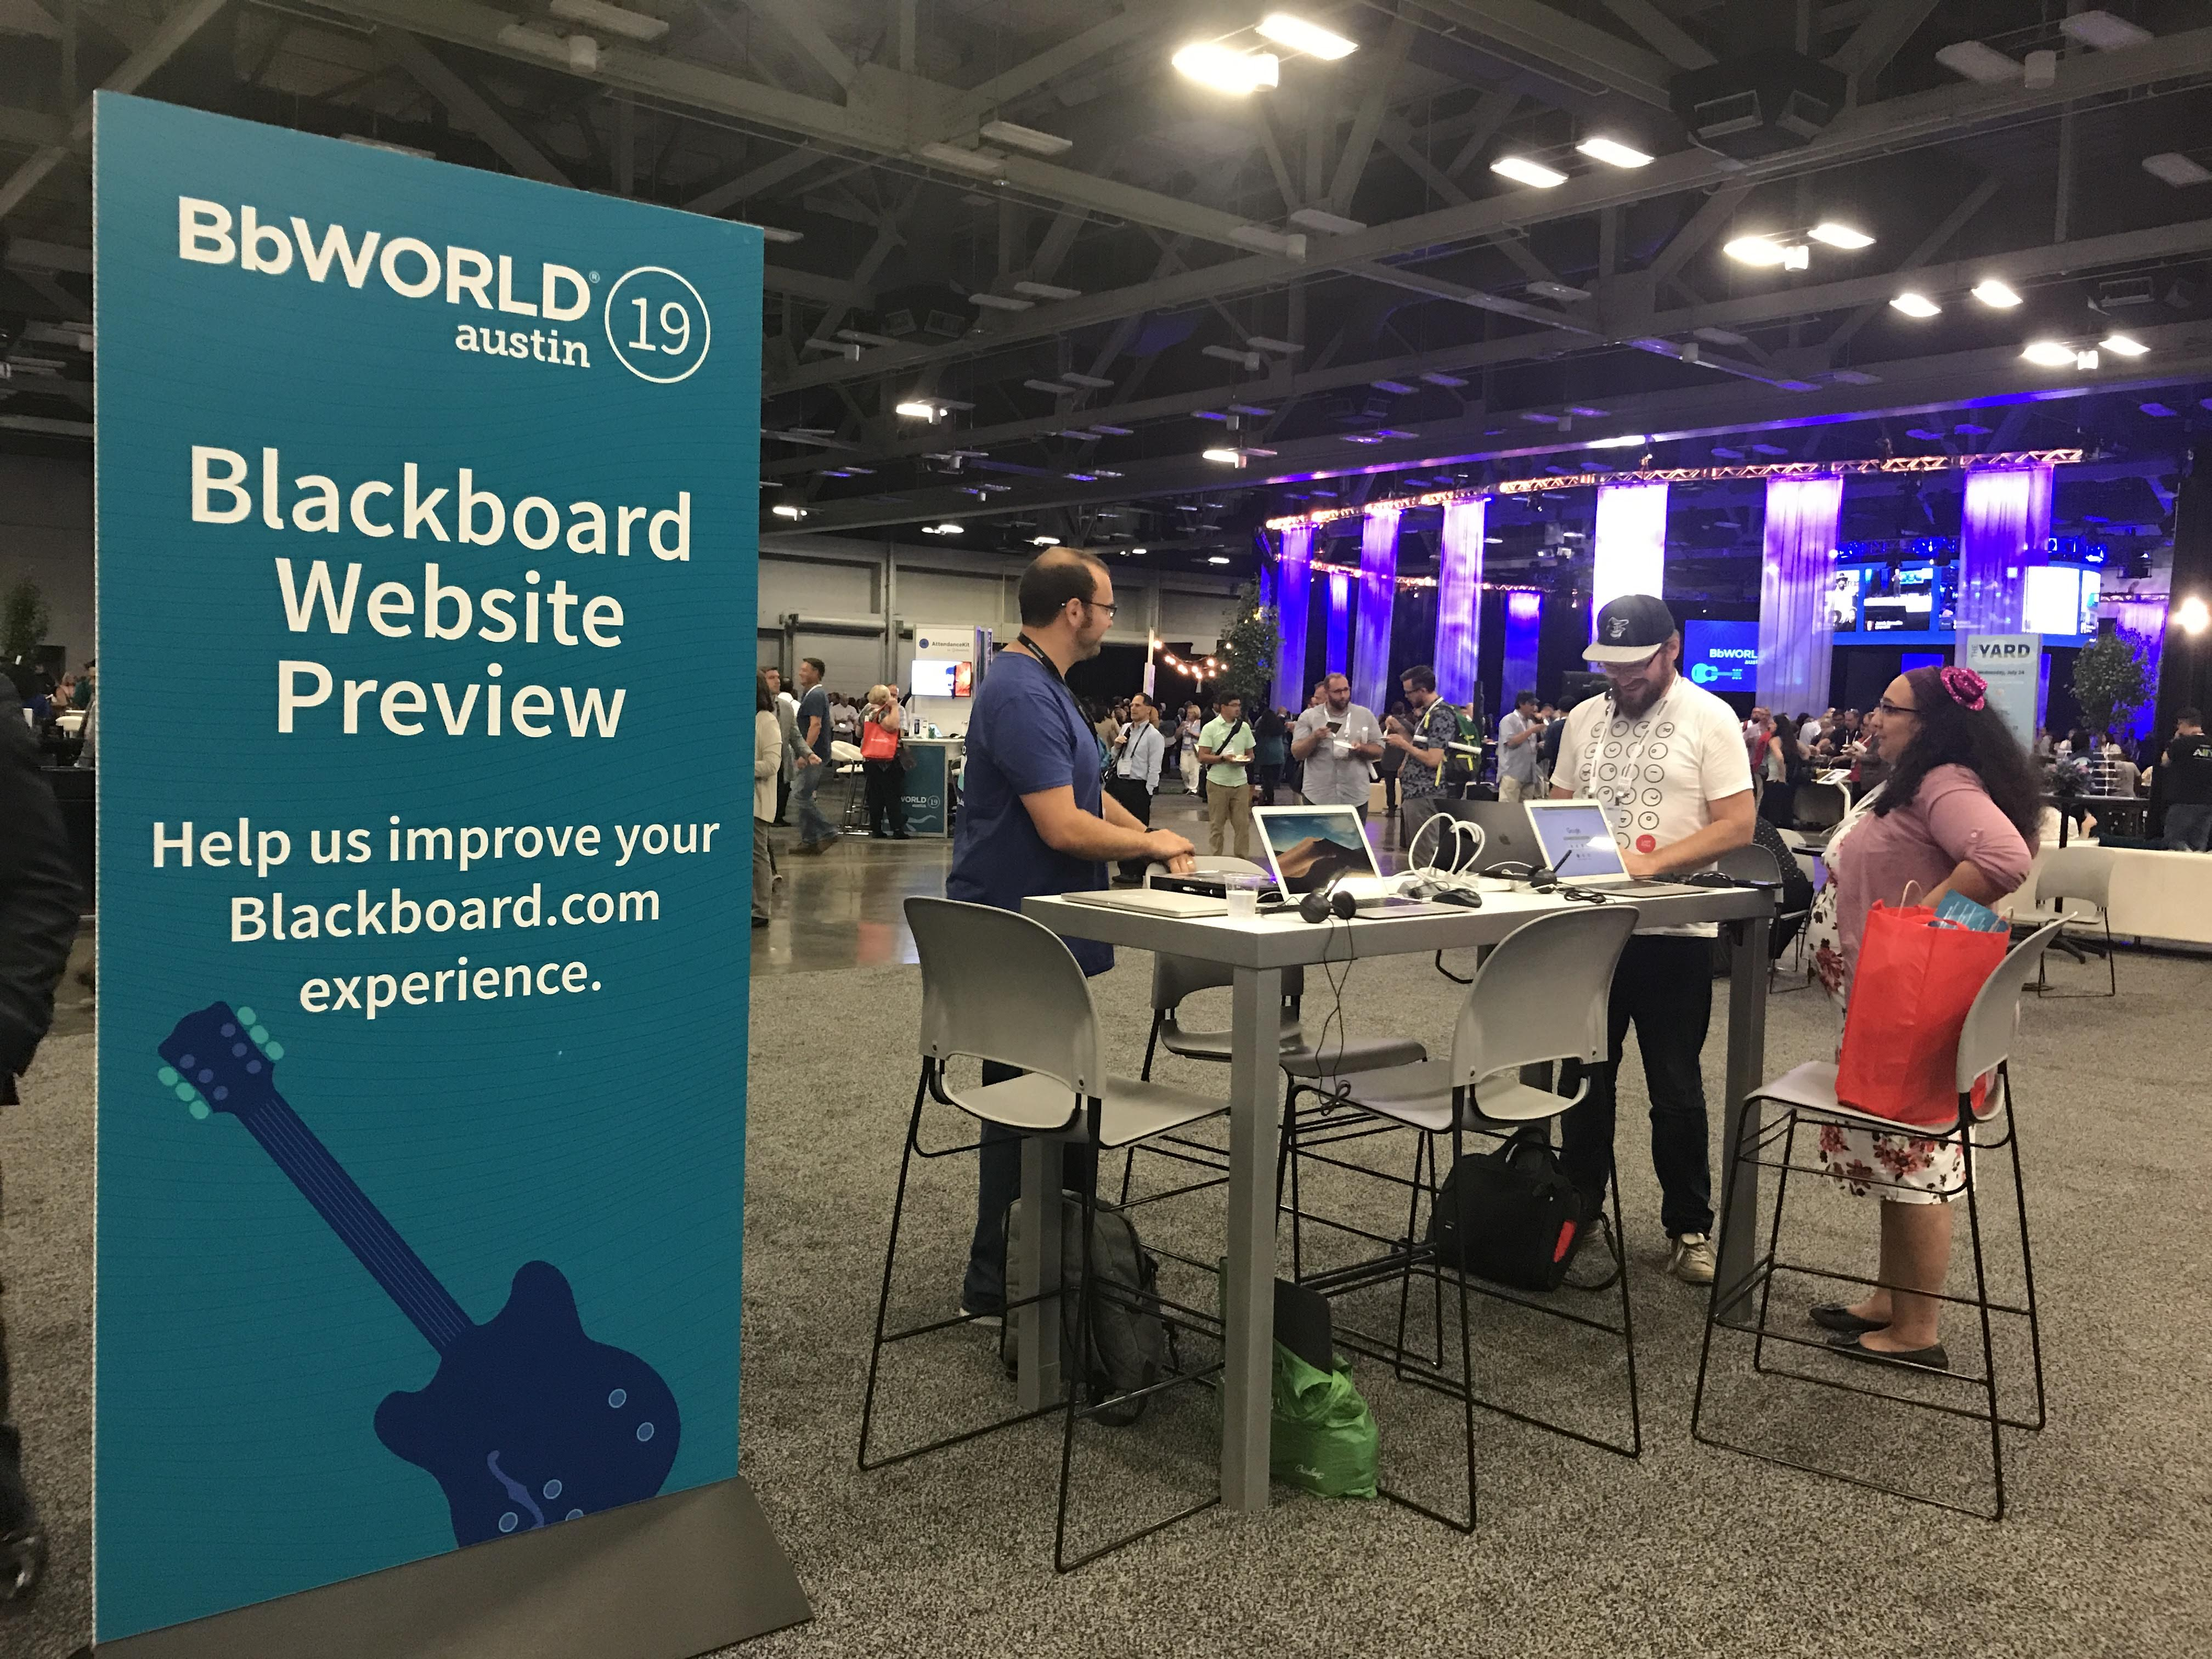 User testing at BbWorld